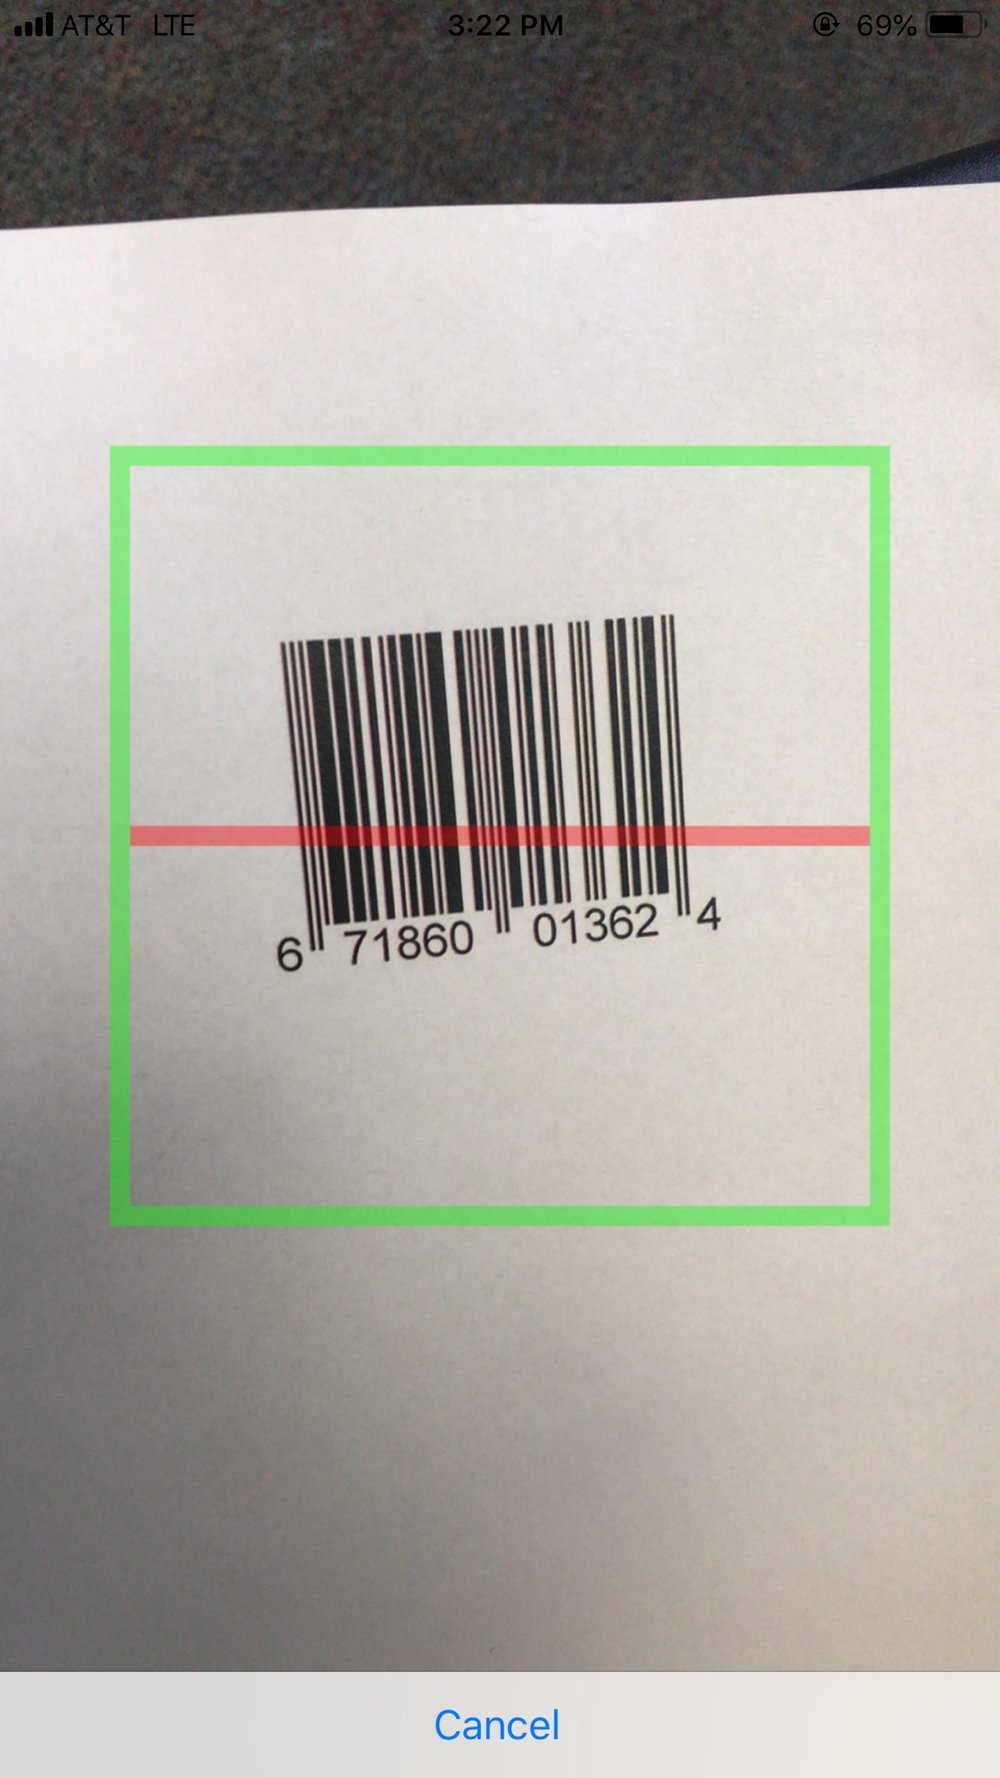 When 'Scan' is tapped, the camera captures the barcode data